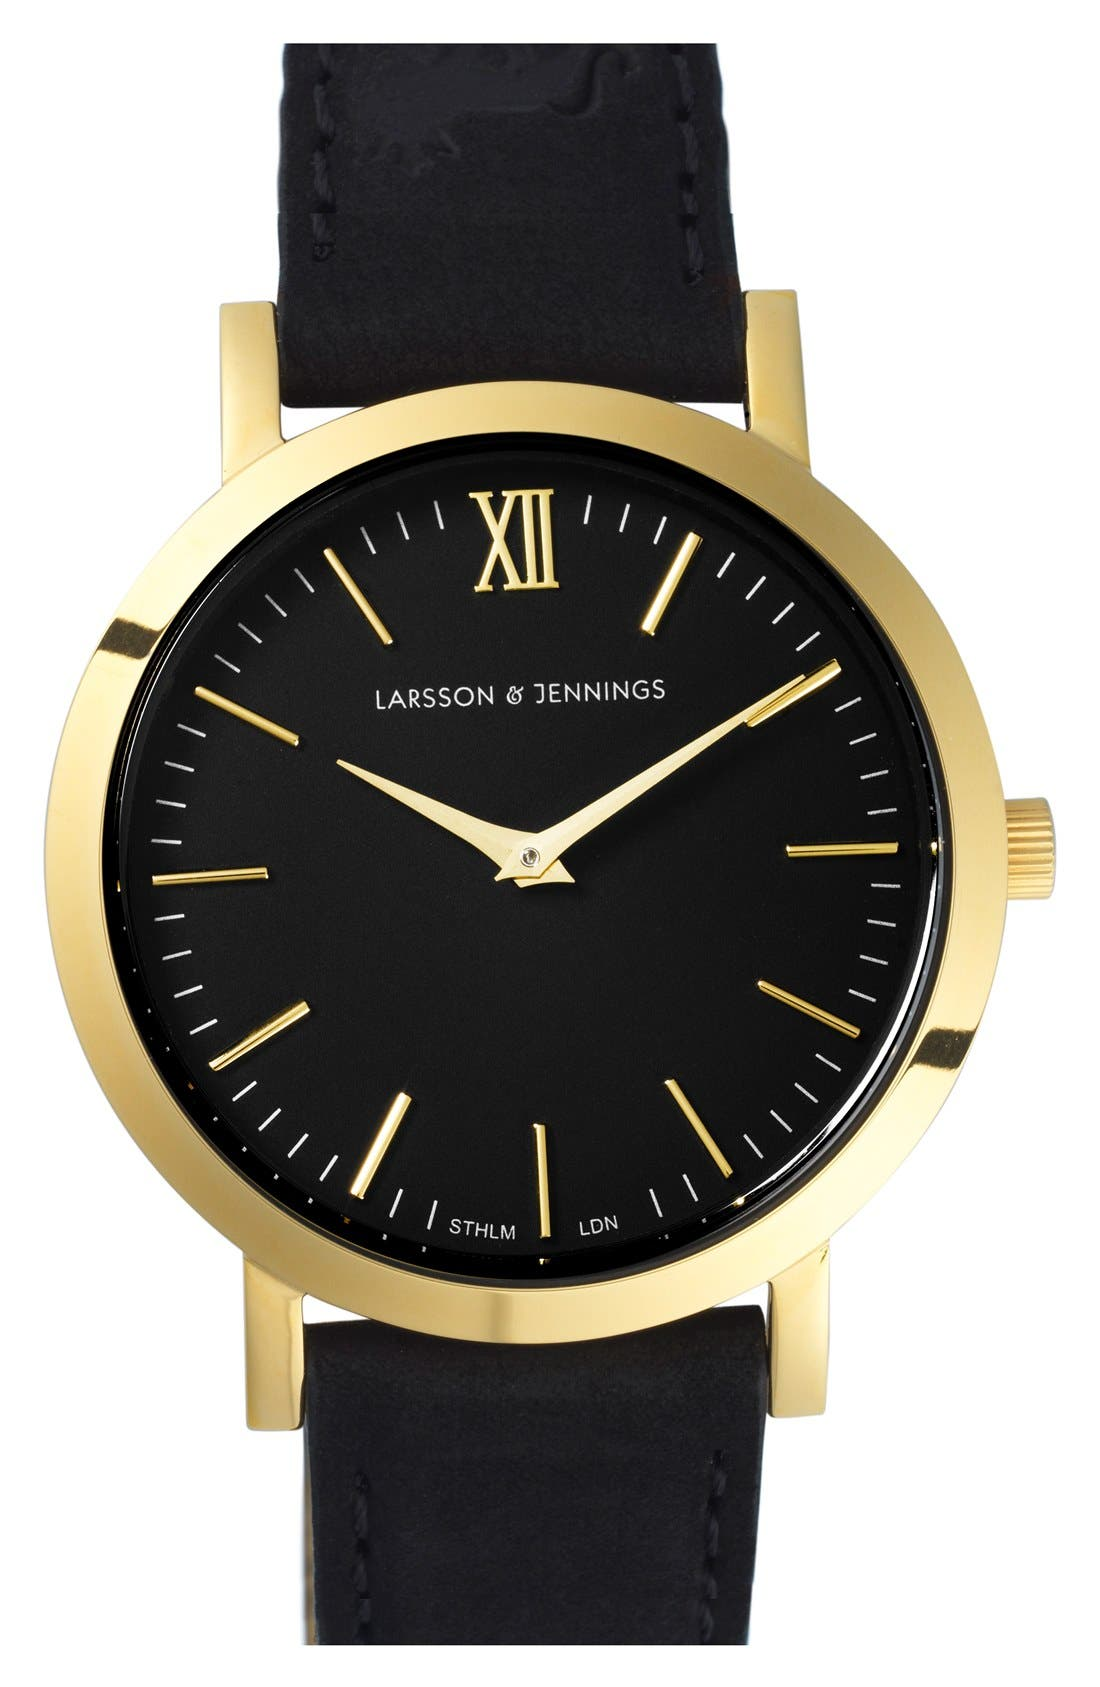 LARSSON & JENNINGS Lugano Leather Strap Watch, 33mm